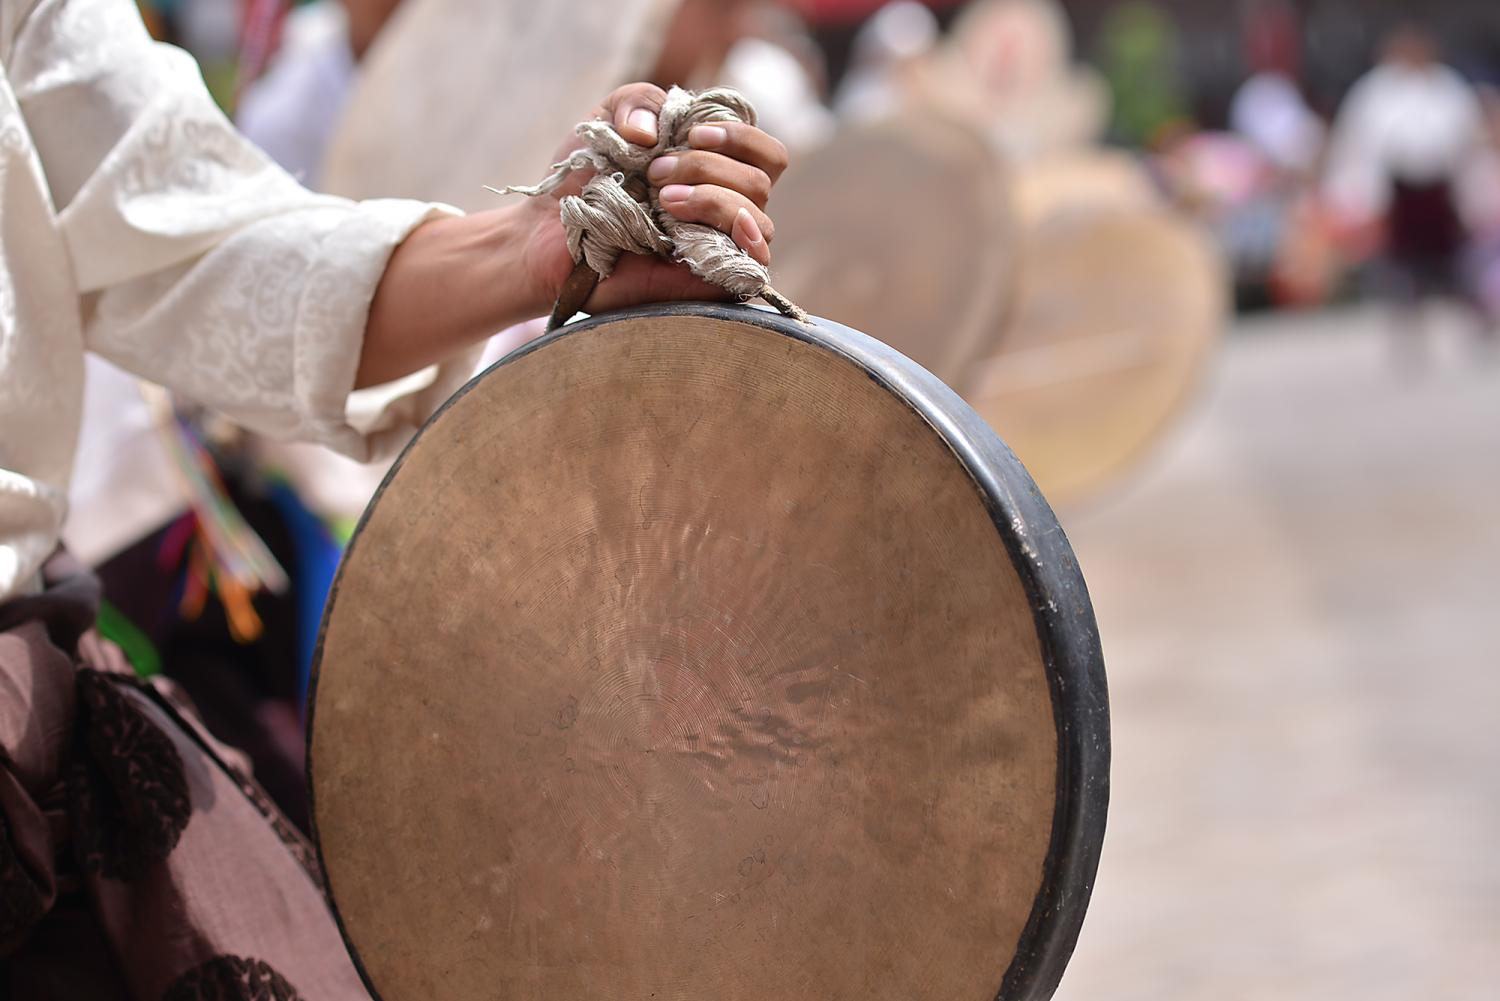 """Rhythmic drumming and dancing continues with the La mgon pa (Lha mngon pa ལྷ་མངོན་པ), or """"Manifesting of the Gods."""""""